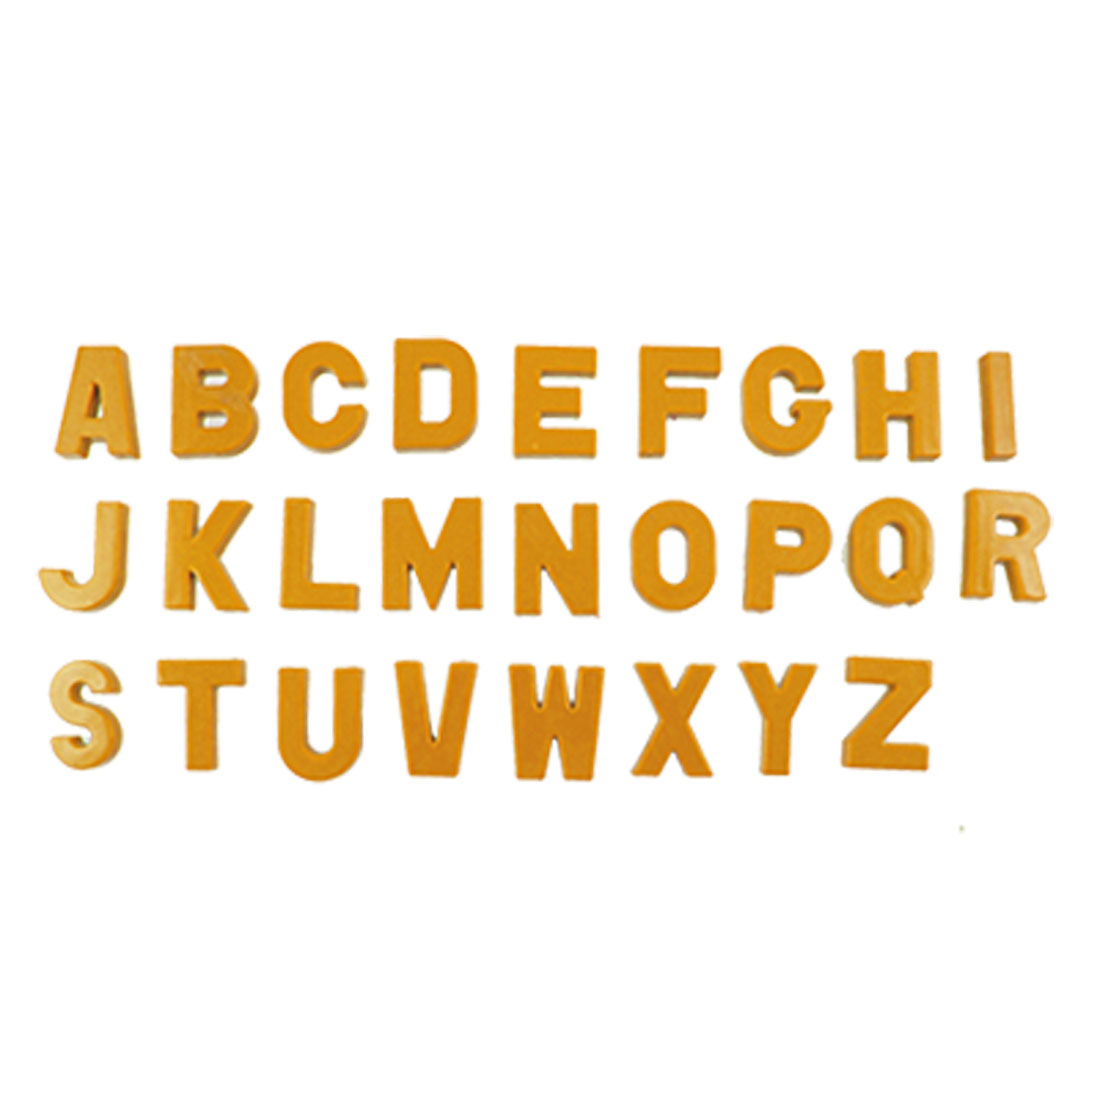 26 Pcs Orange Plastic Alphabet Shape Magnetic Sticker Decor